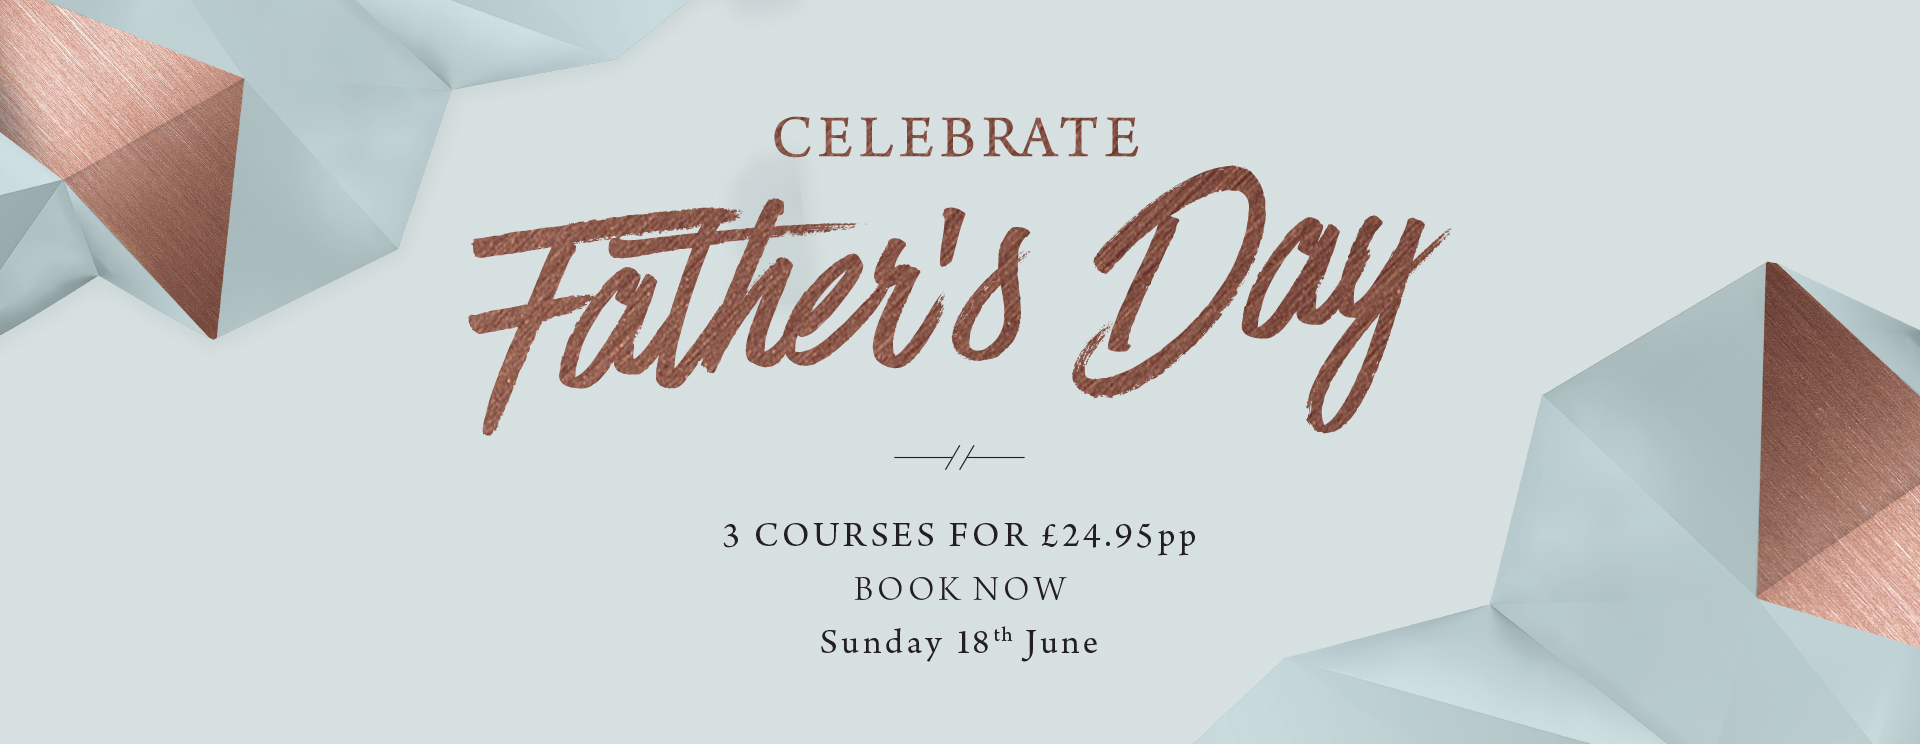 Father's Day at The Blue Anchor - Book now